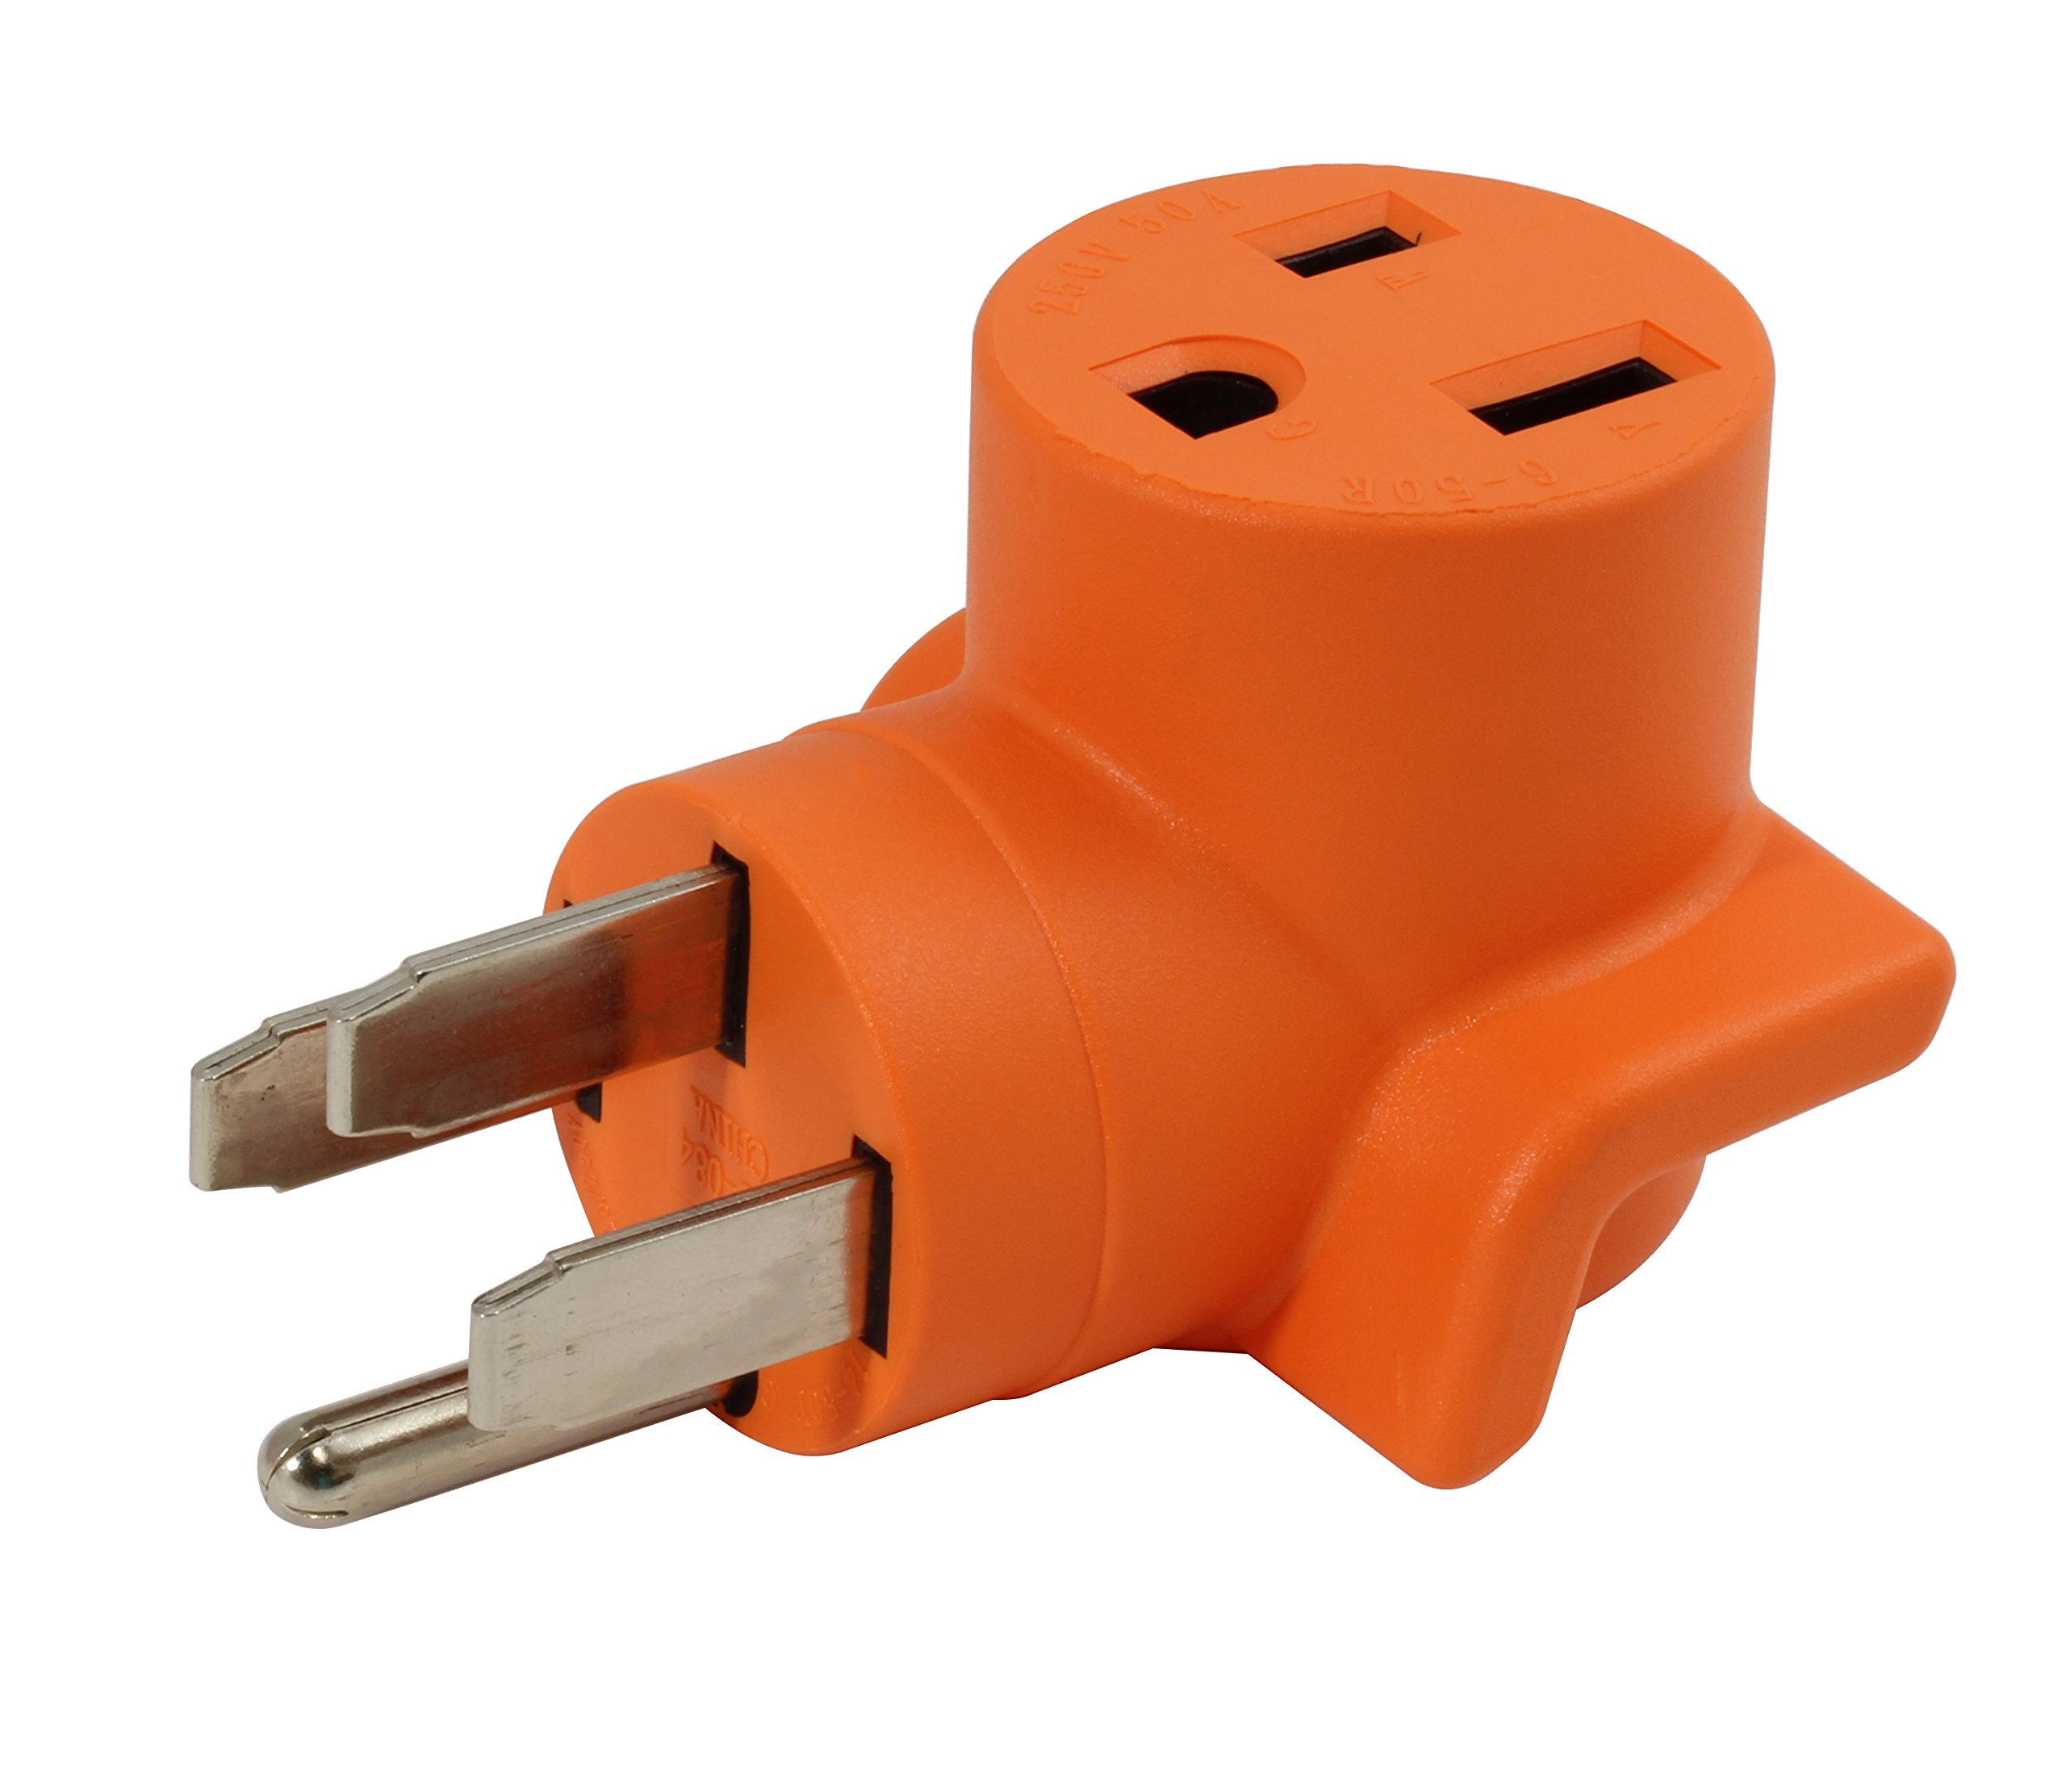 AC WORKS [WD1450650] 50Amp RV/ Range/ Generator 14-50 Plug to 6-50R 50Amp 250V Welder adapter